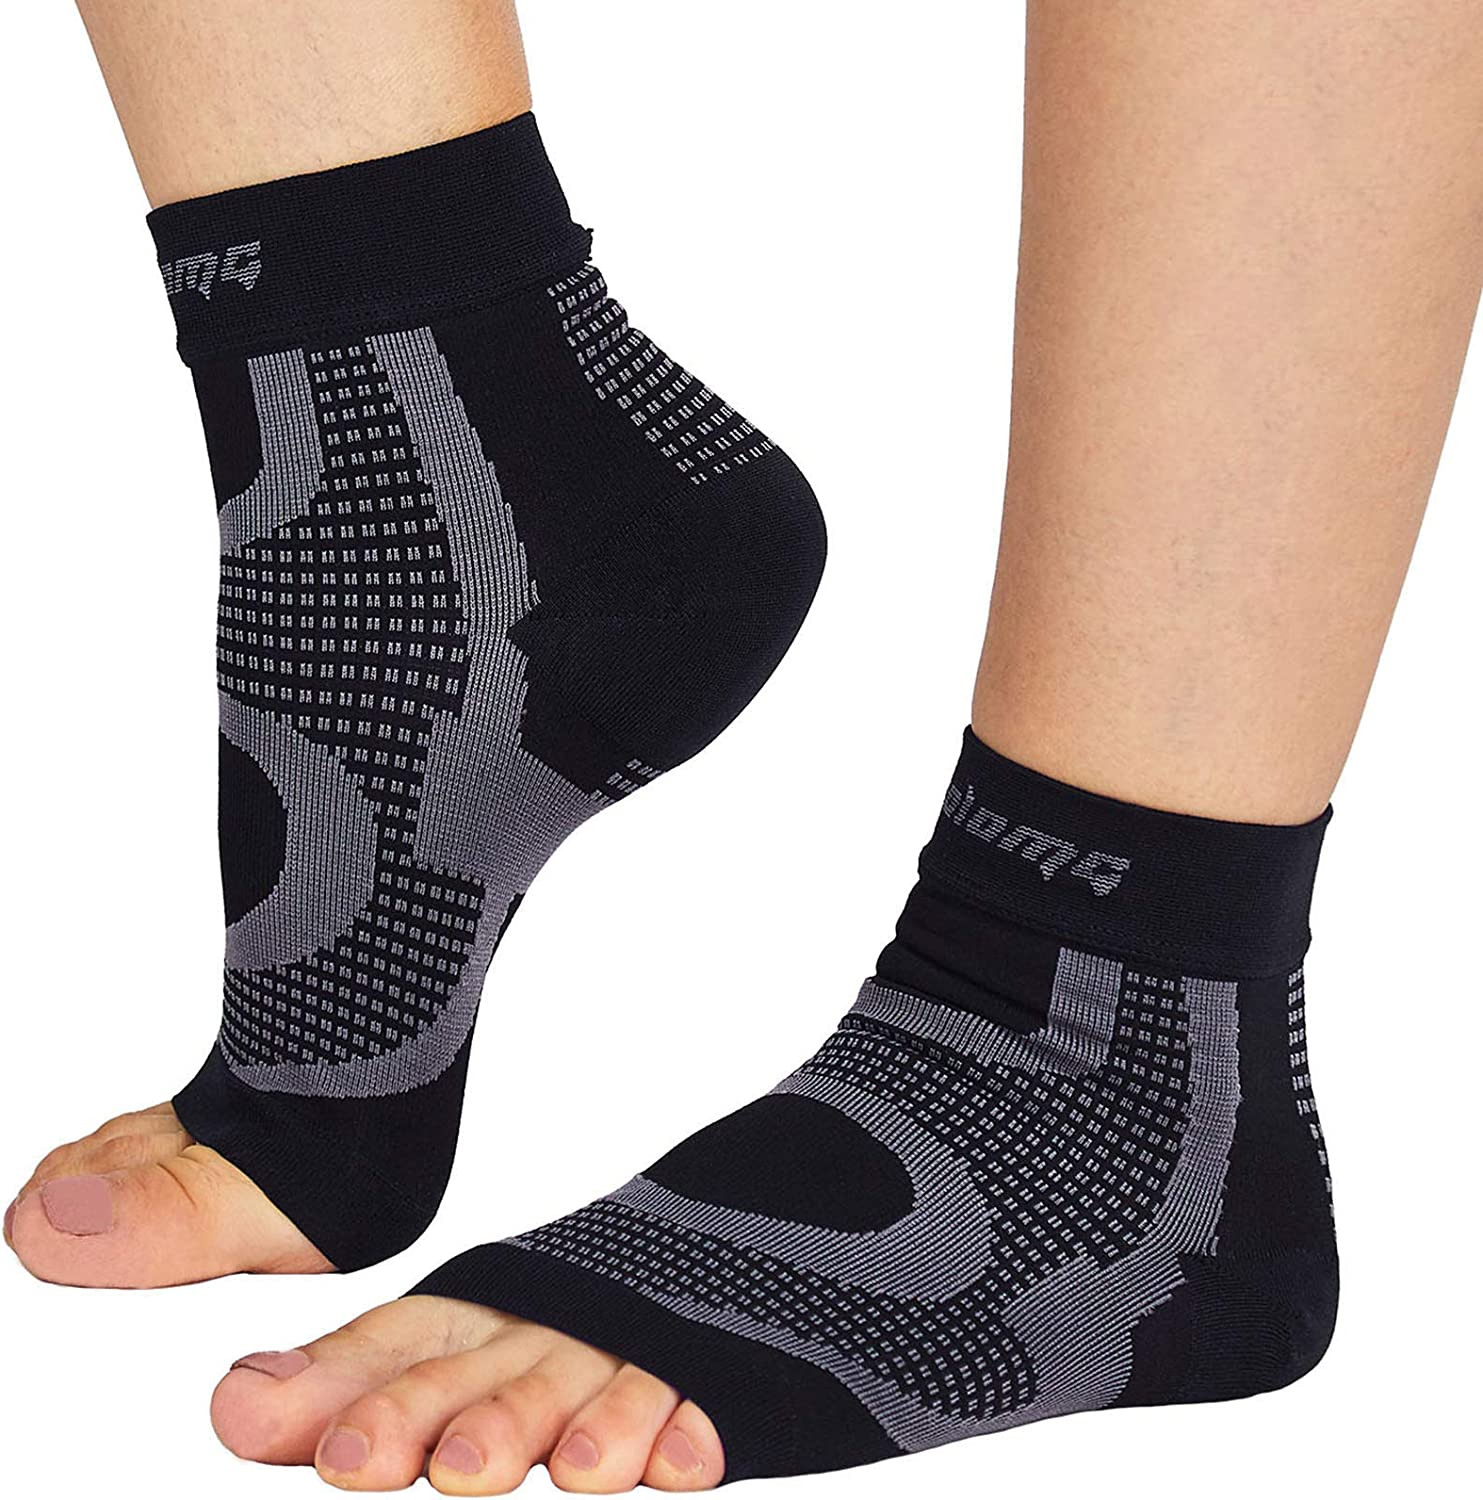 Ankle Brace Compression Support Sleeve for Basketball Running volleyball Sport,Breathable Ankle Support for Injury Recovery,Joint Pain,Swelling and Achilles Tendon Sprains Medium